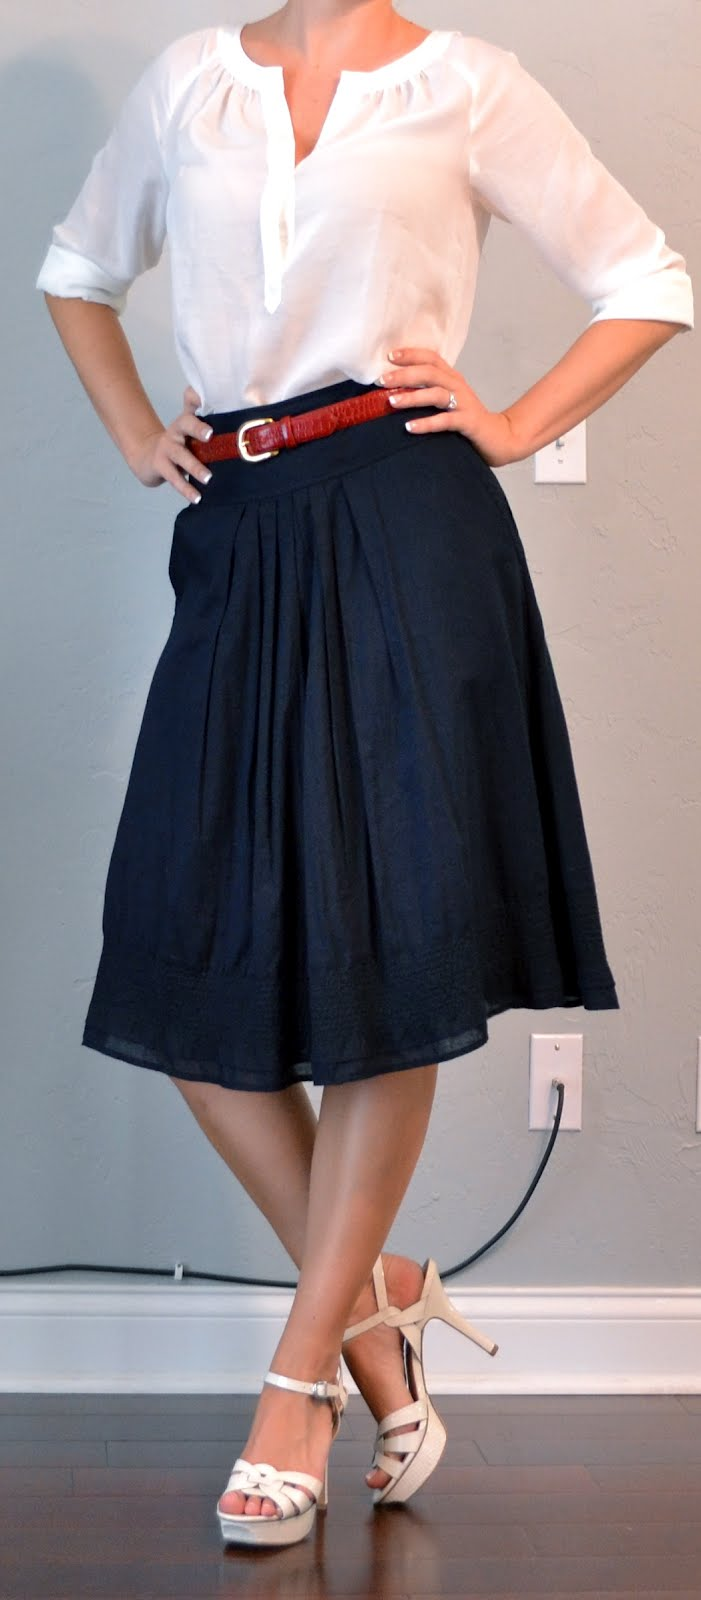 outfit post: white peasant blouse, a-line navy skirt, red belt